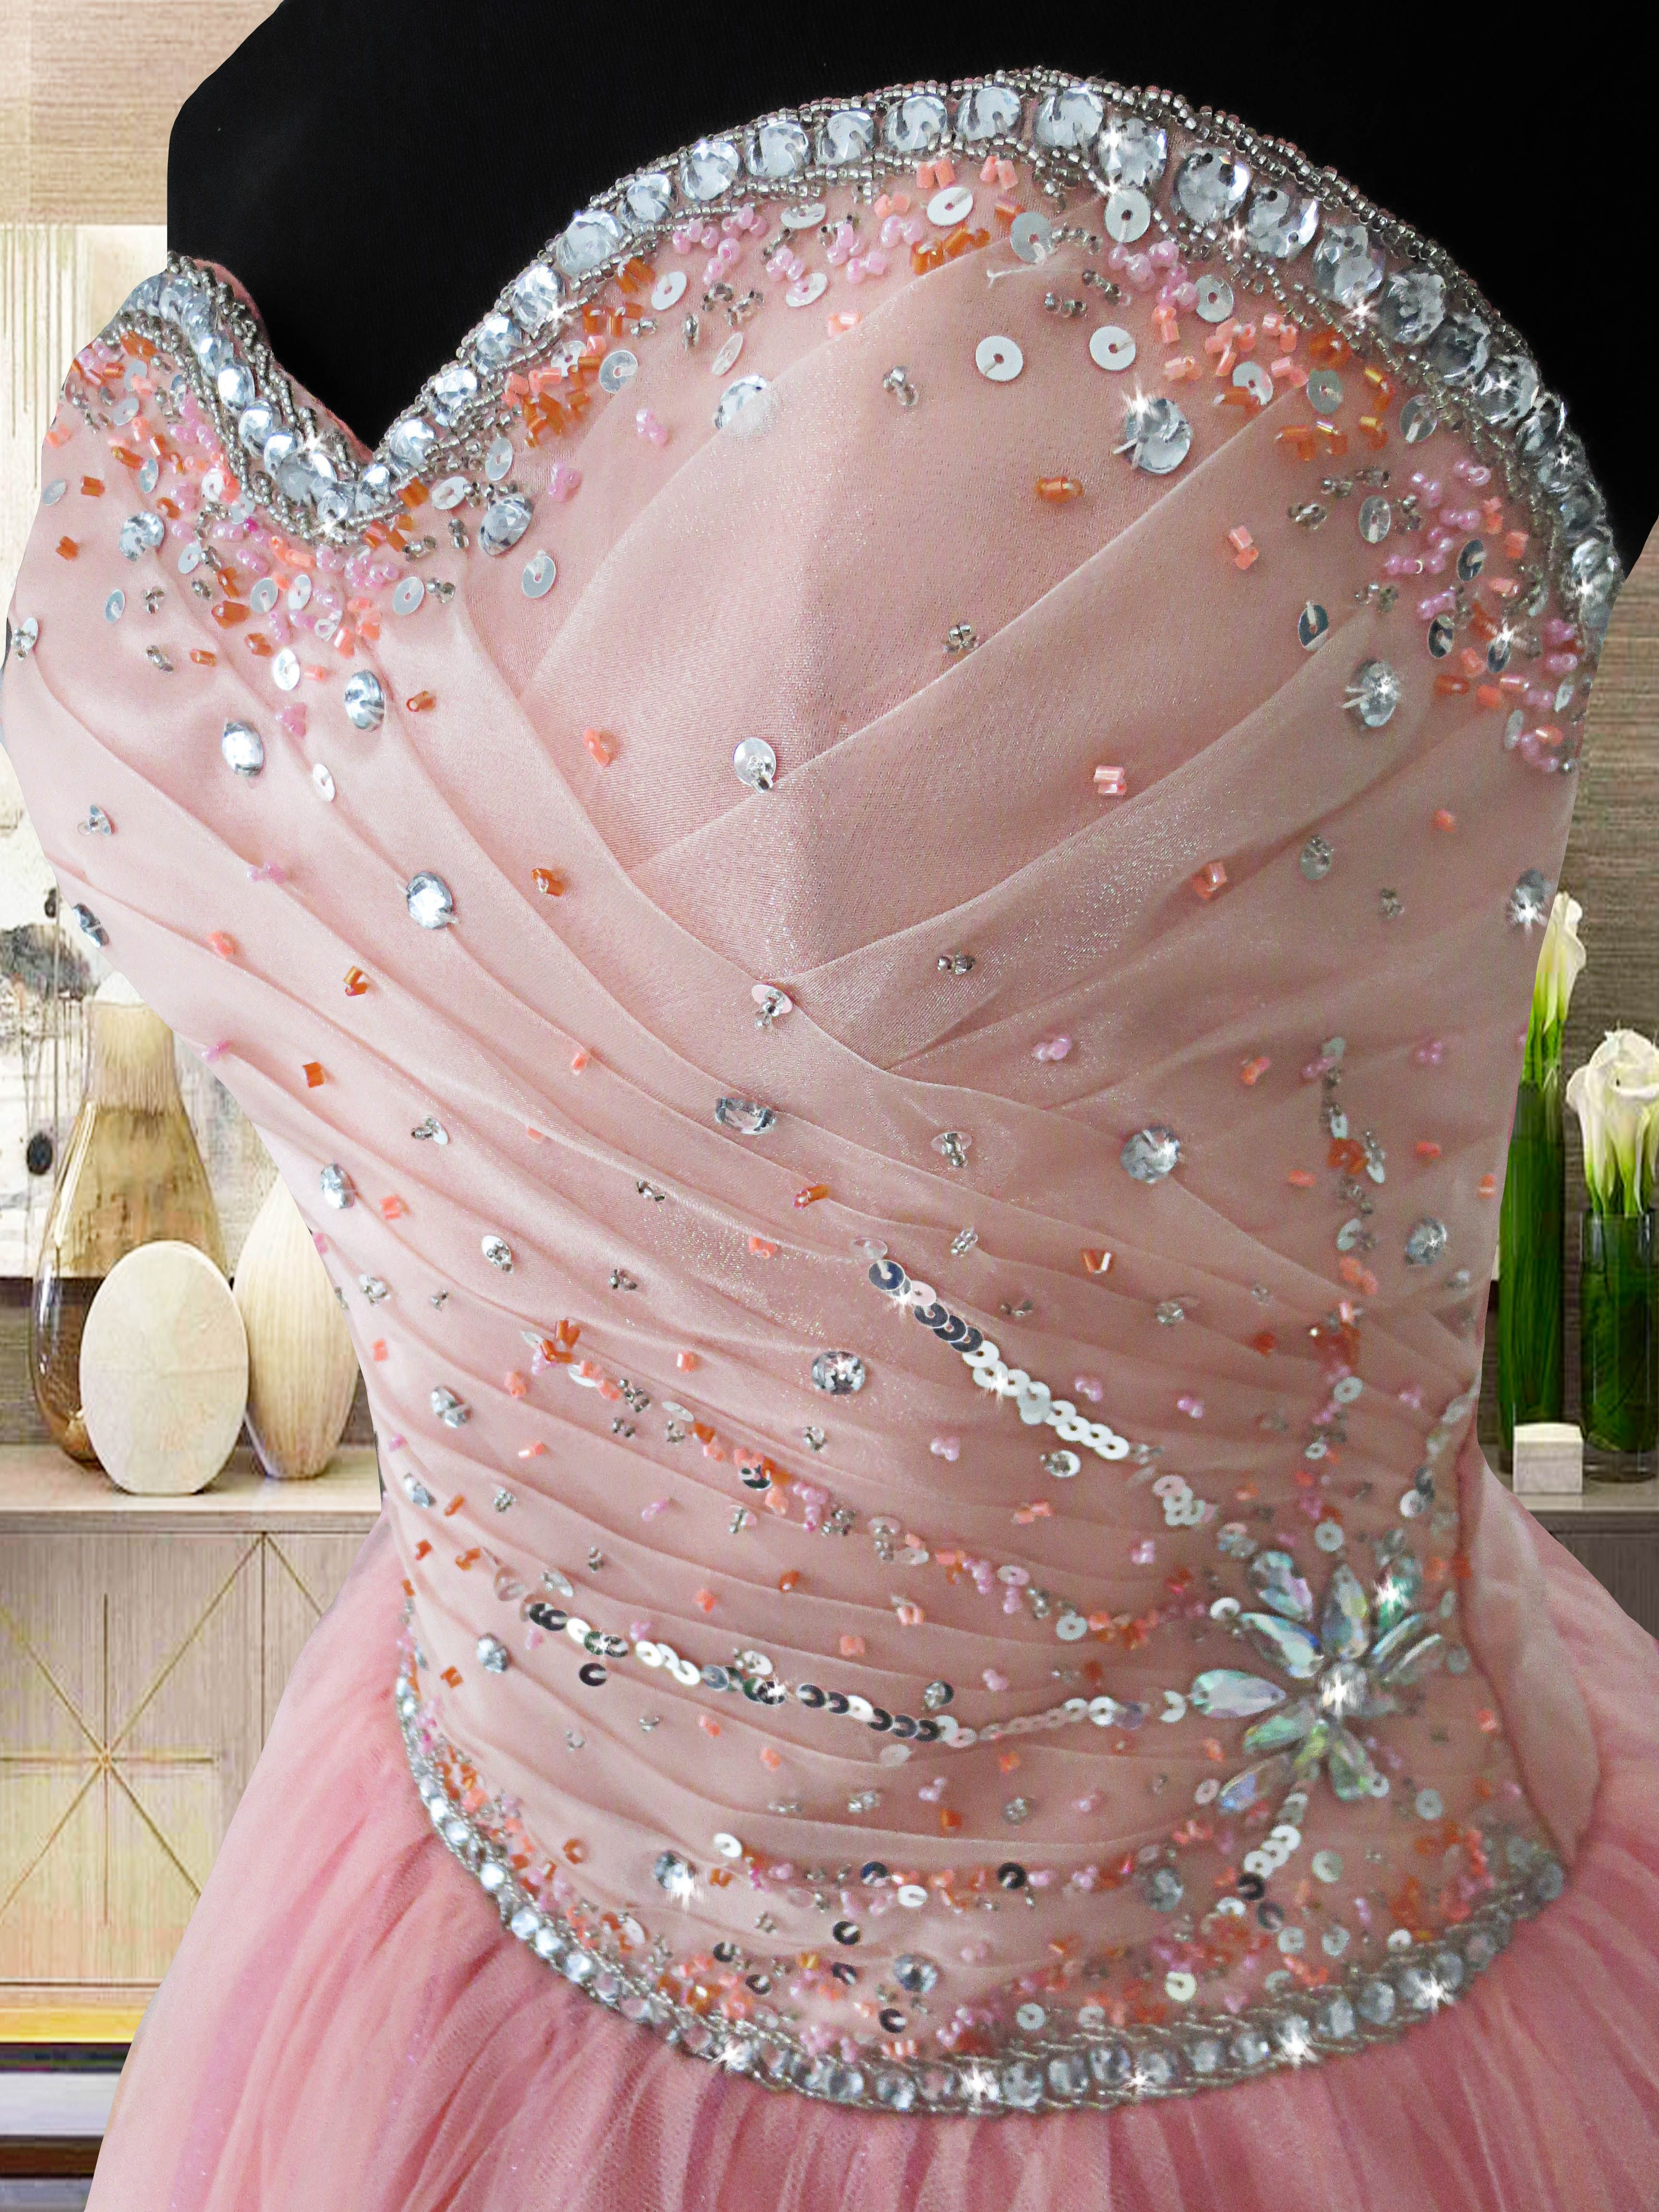 The Amelia gown is a pink-peach ball gown with crystals on its ...